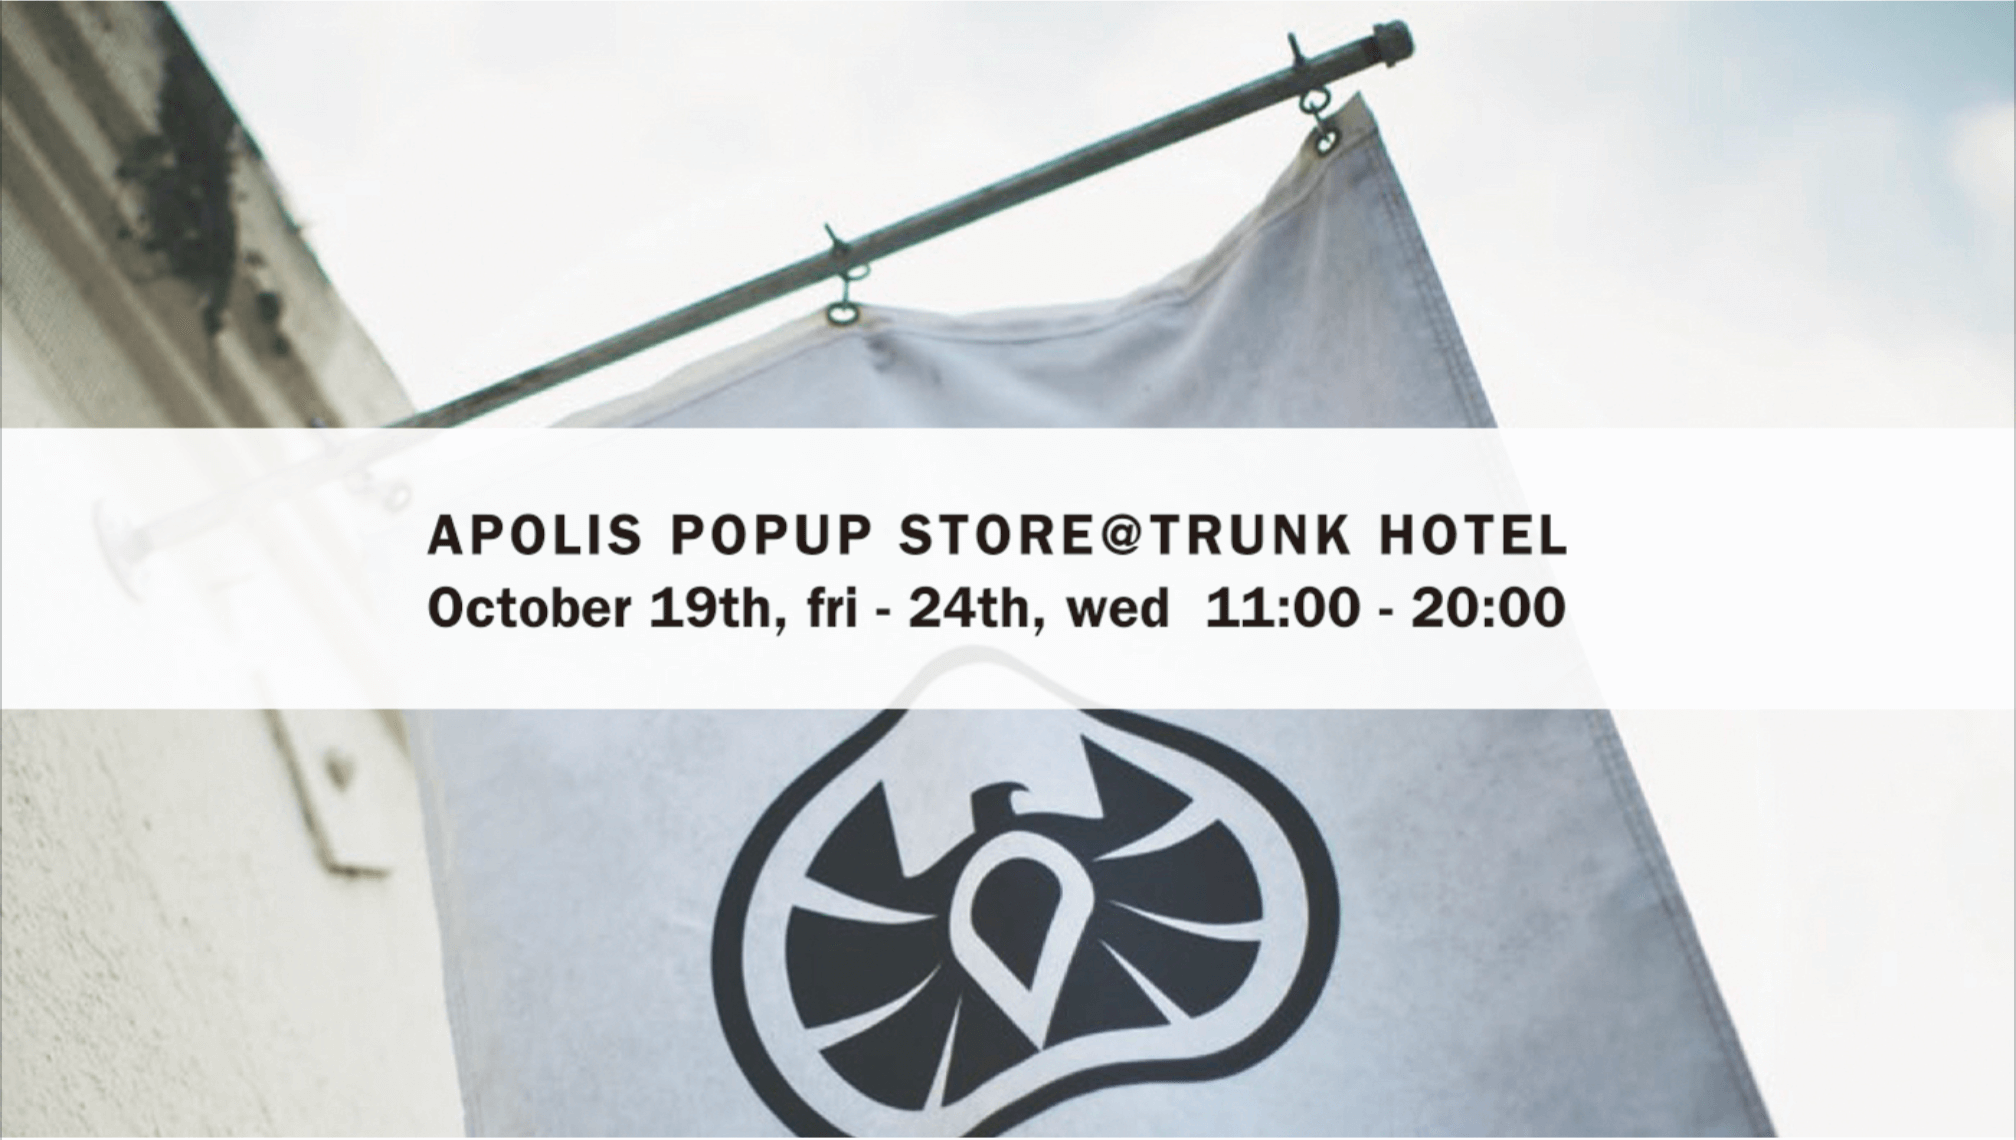 APOLIS POP UP STORE